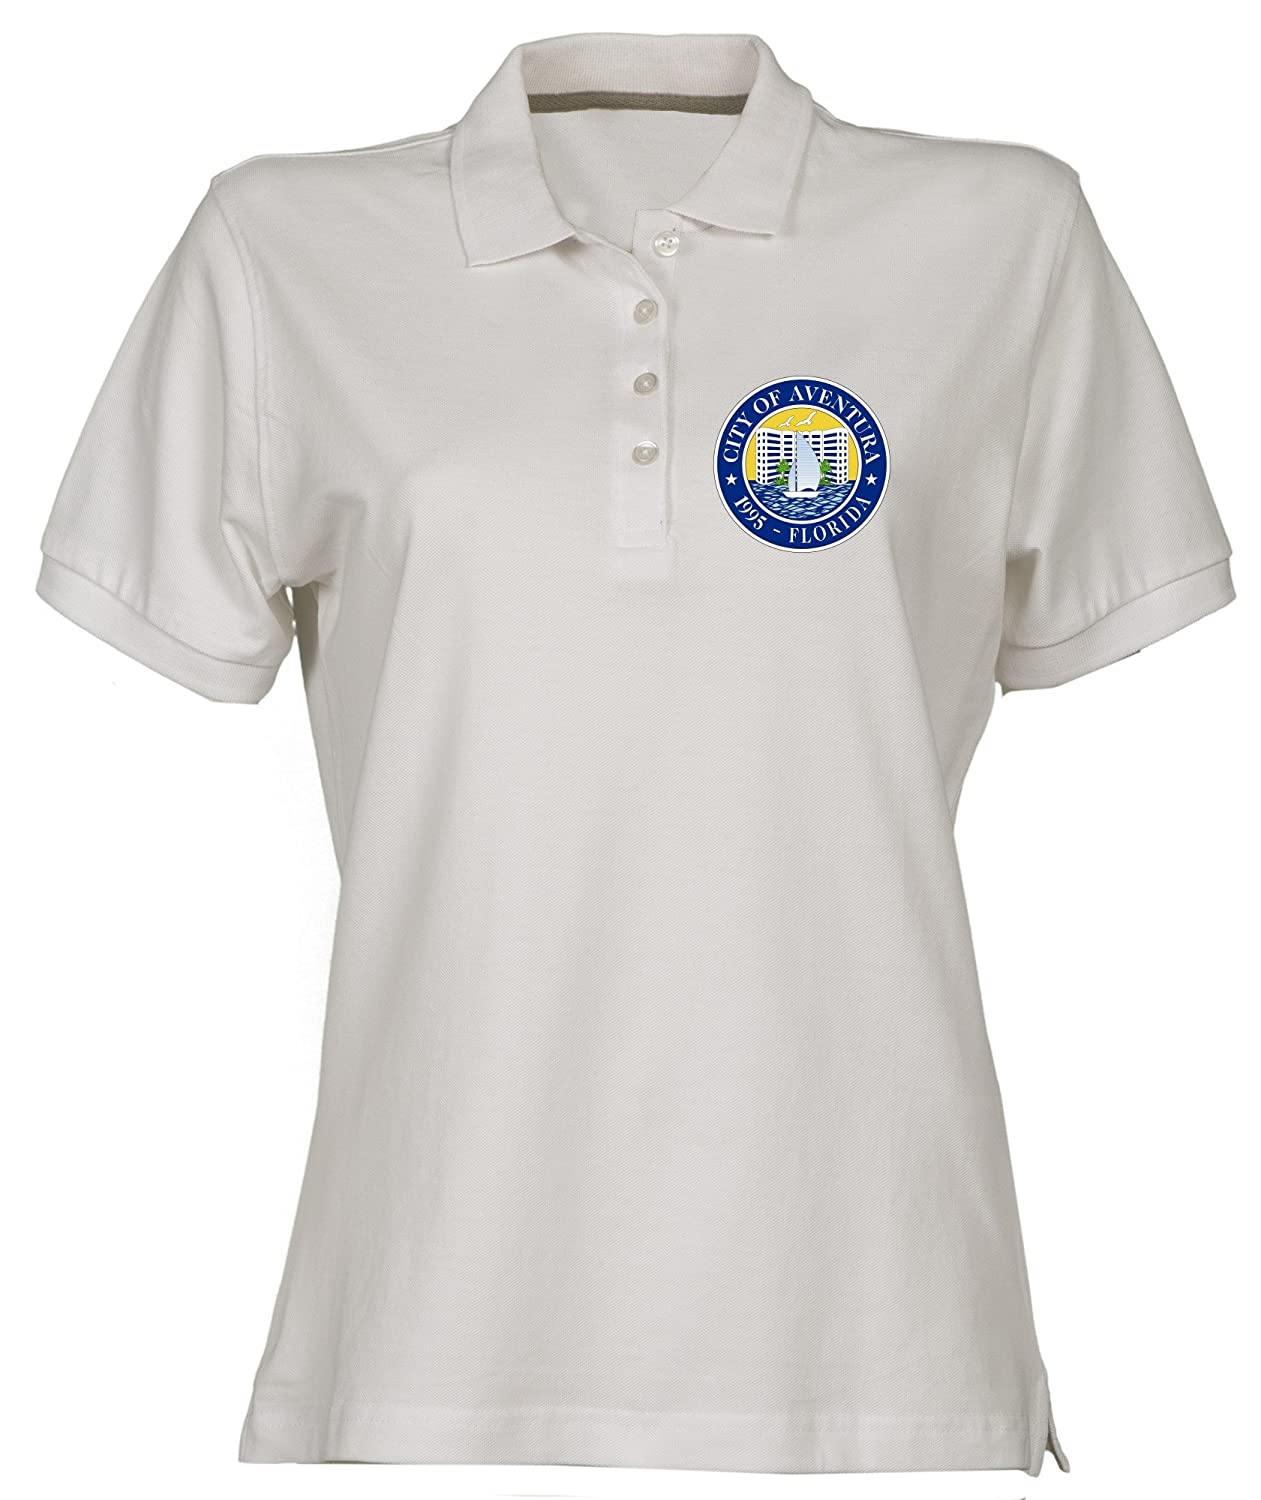 Polo para Mujer Blanco TM0030 City of Aventura Florida Citta ...